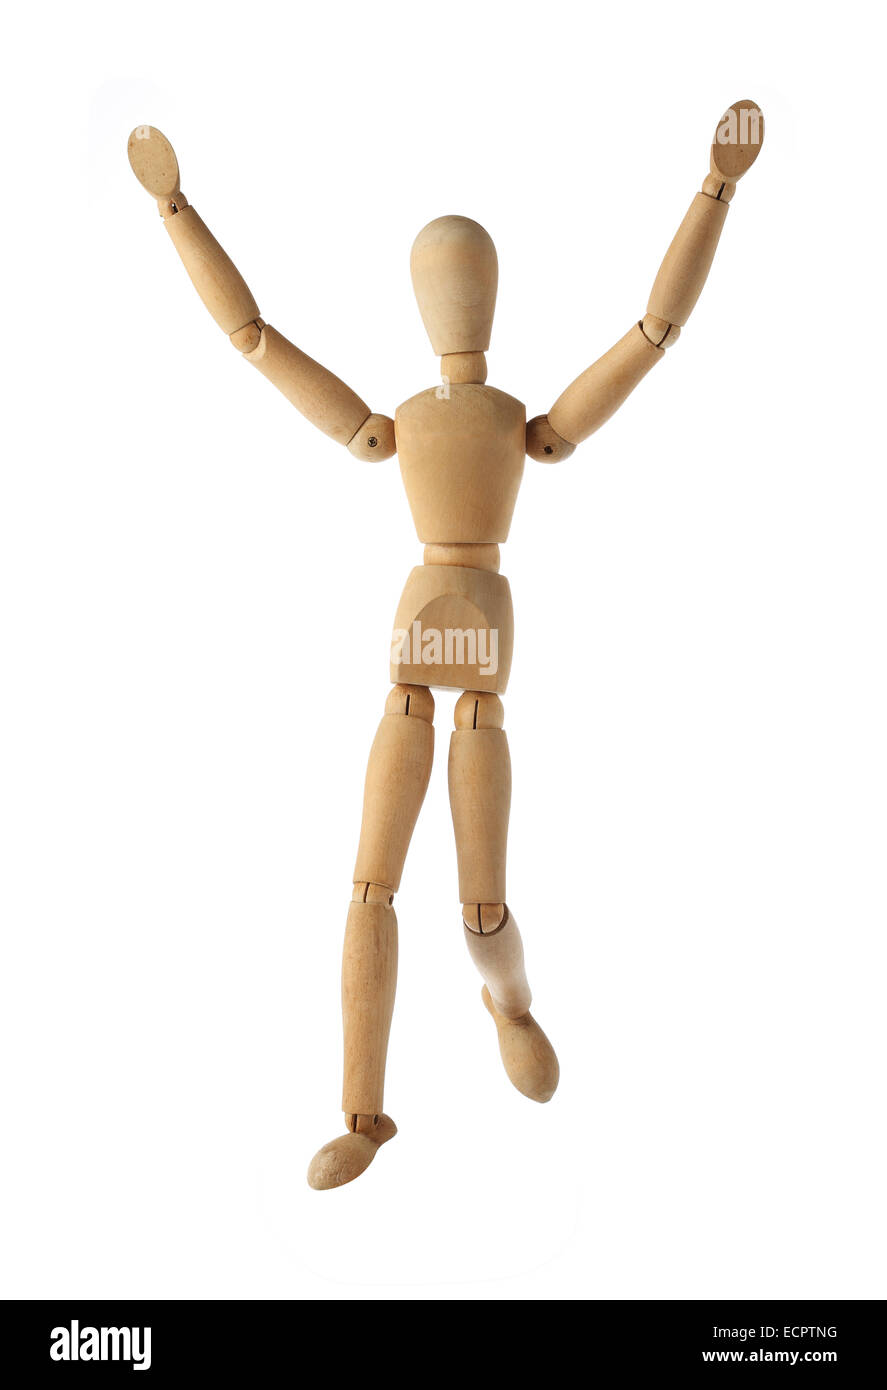 mannequin old wooden dummy wining and finish acting isolated on white - Stock Image